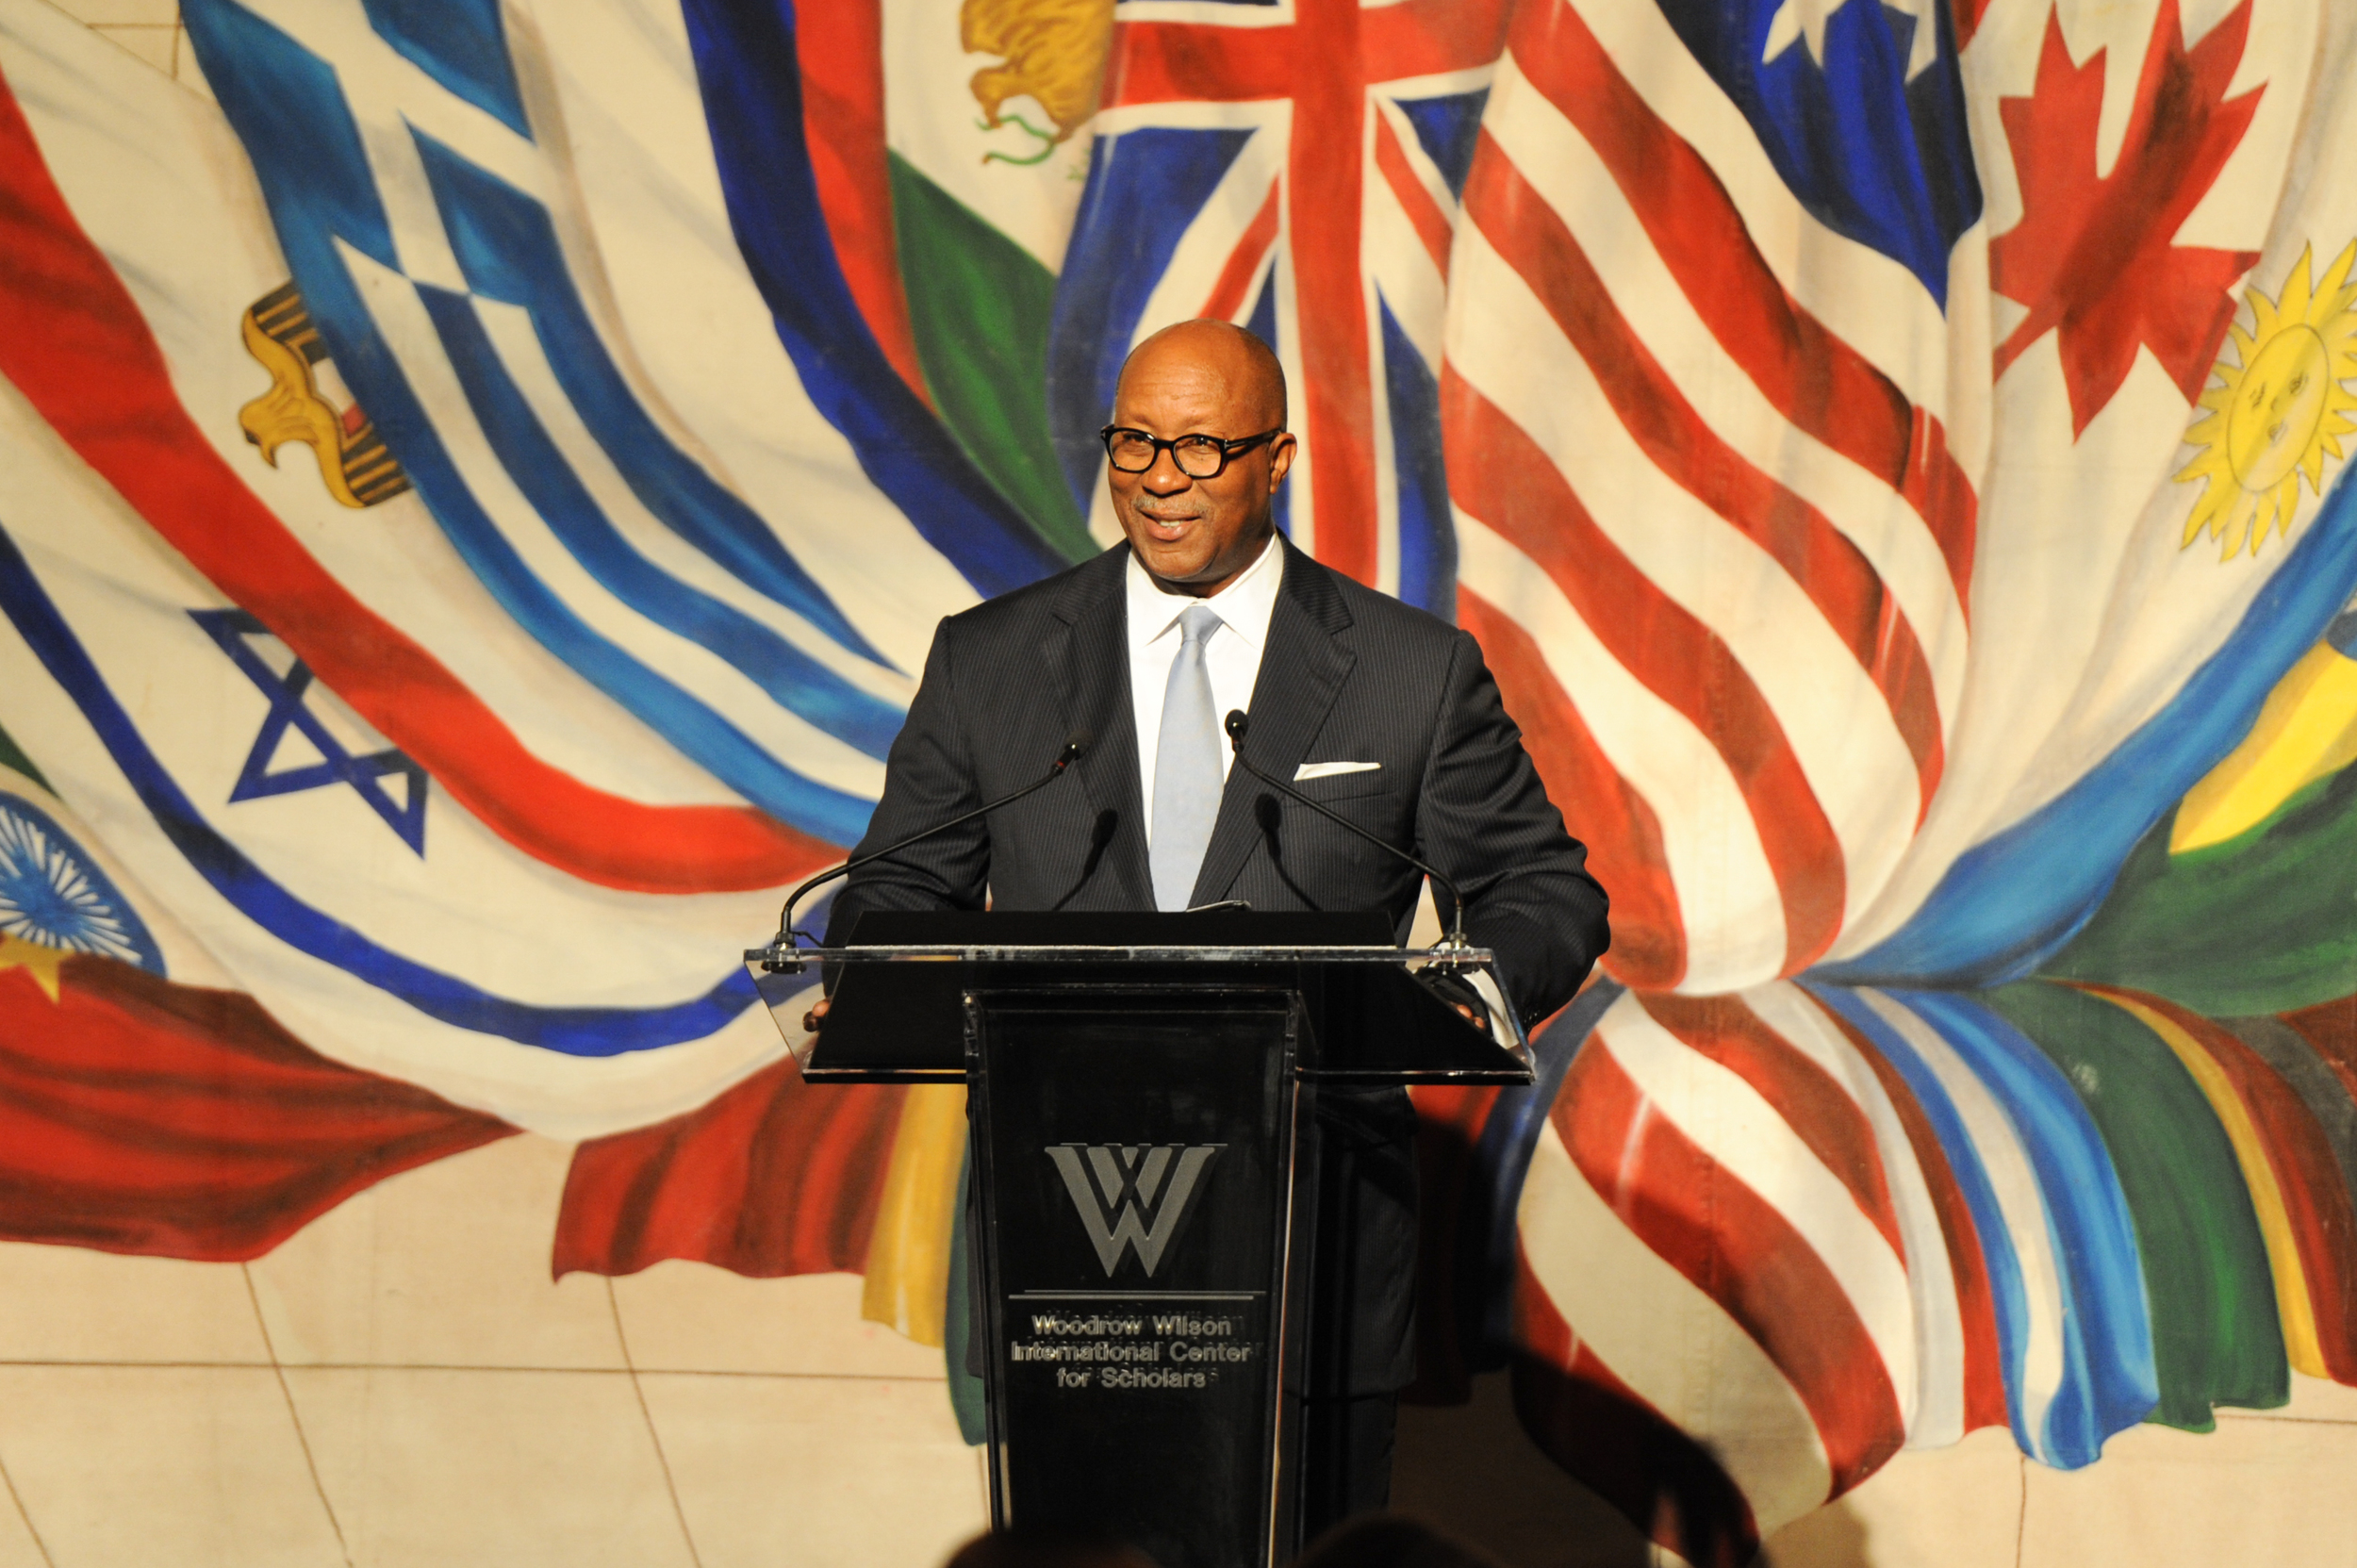 Former Dallas Mayor and event Honorary Co-Chair, Ron Kirk, speaks at the Woodrow Wilson Center Awards in 2014.